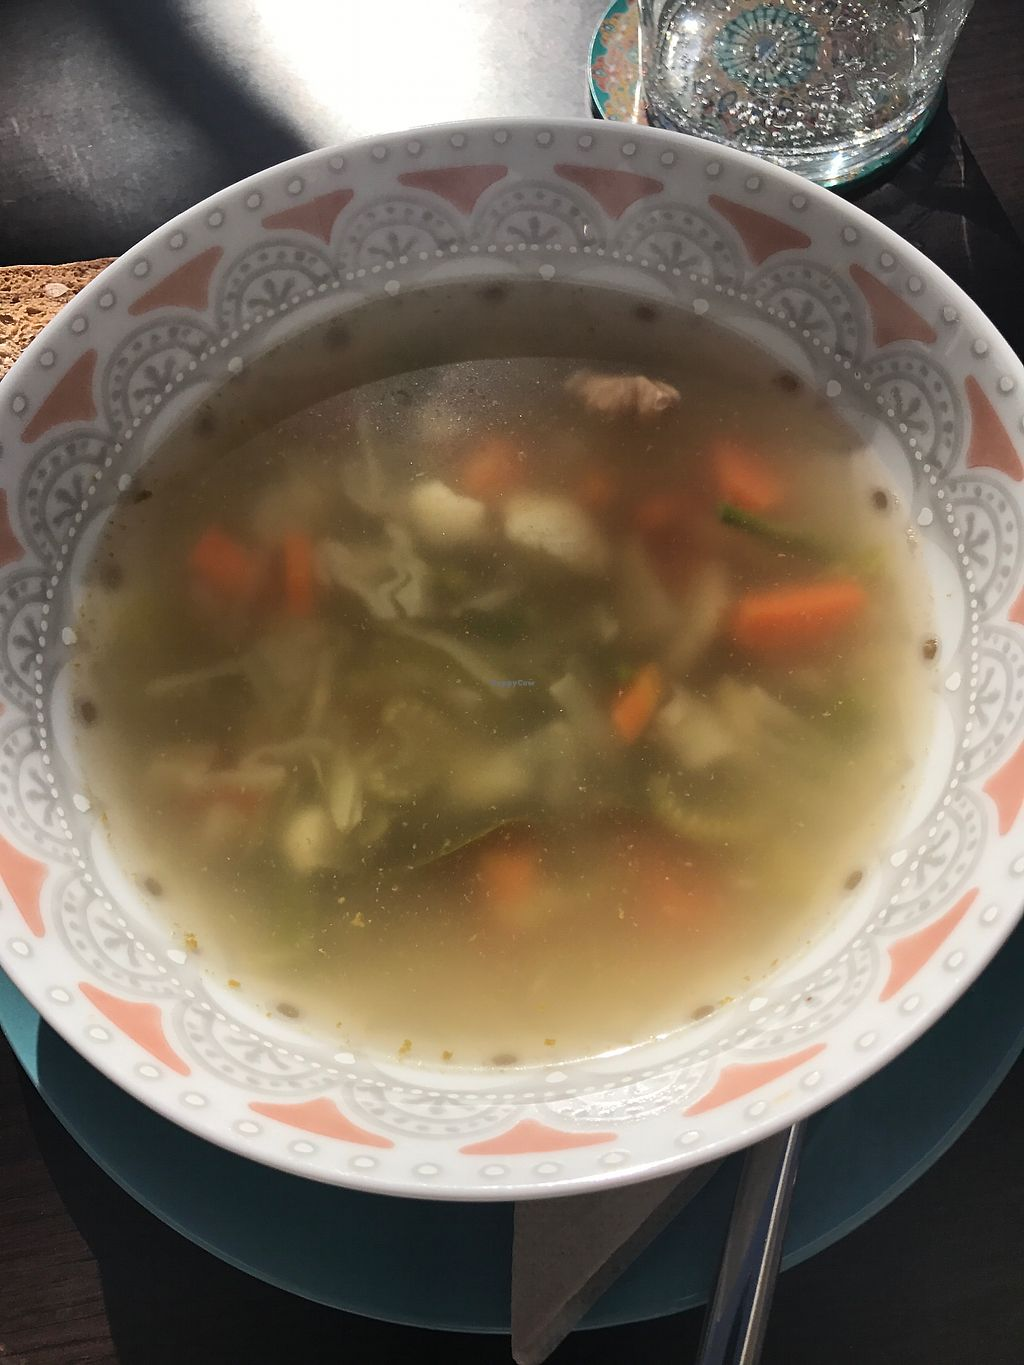 """Photo of Eco Eco  by <a href=""""/members/profile/davidmannesse"""">davidmannesse</a> <br/>The vegetable soup  <br/> February 17, 2018  - <a href='/contact/abuse/image/71532/360540'>Report</a>"""